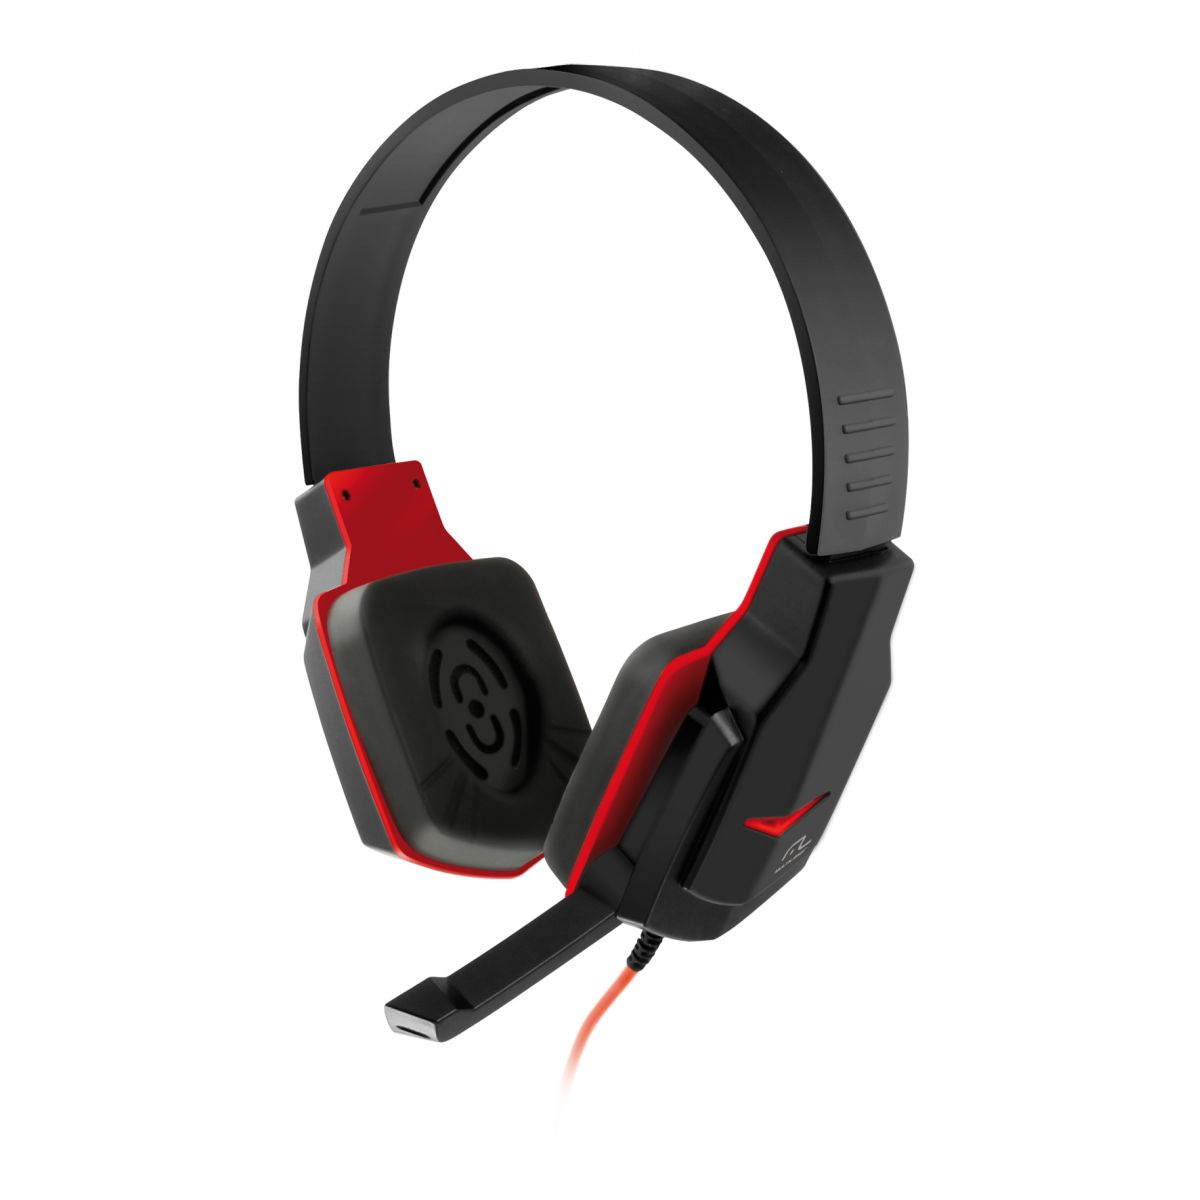 Fone Ouvido Gamer Headset Microfone Multilaser